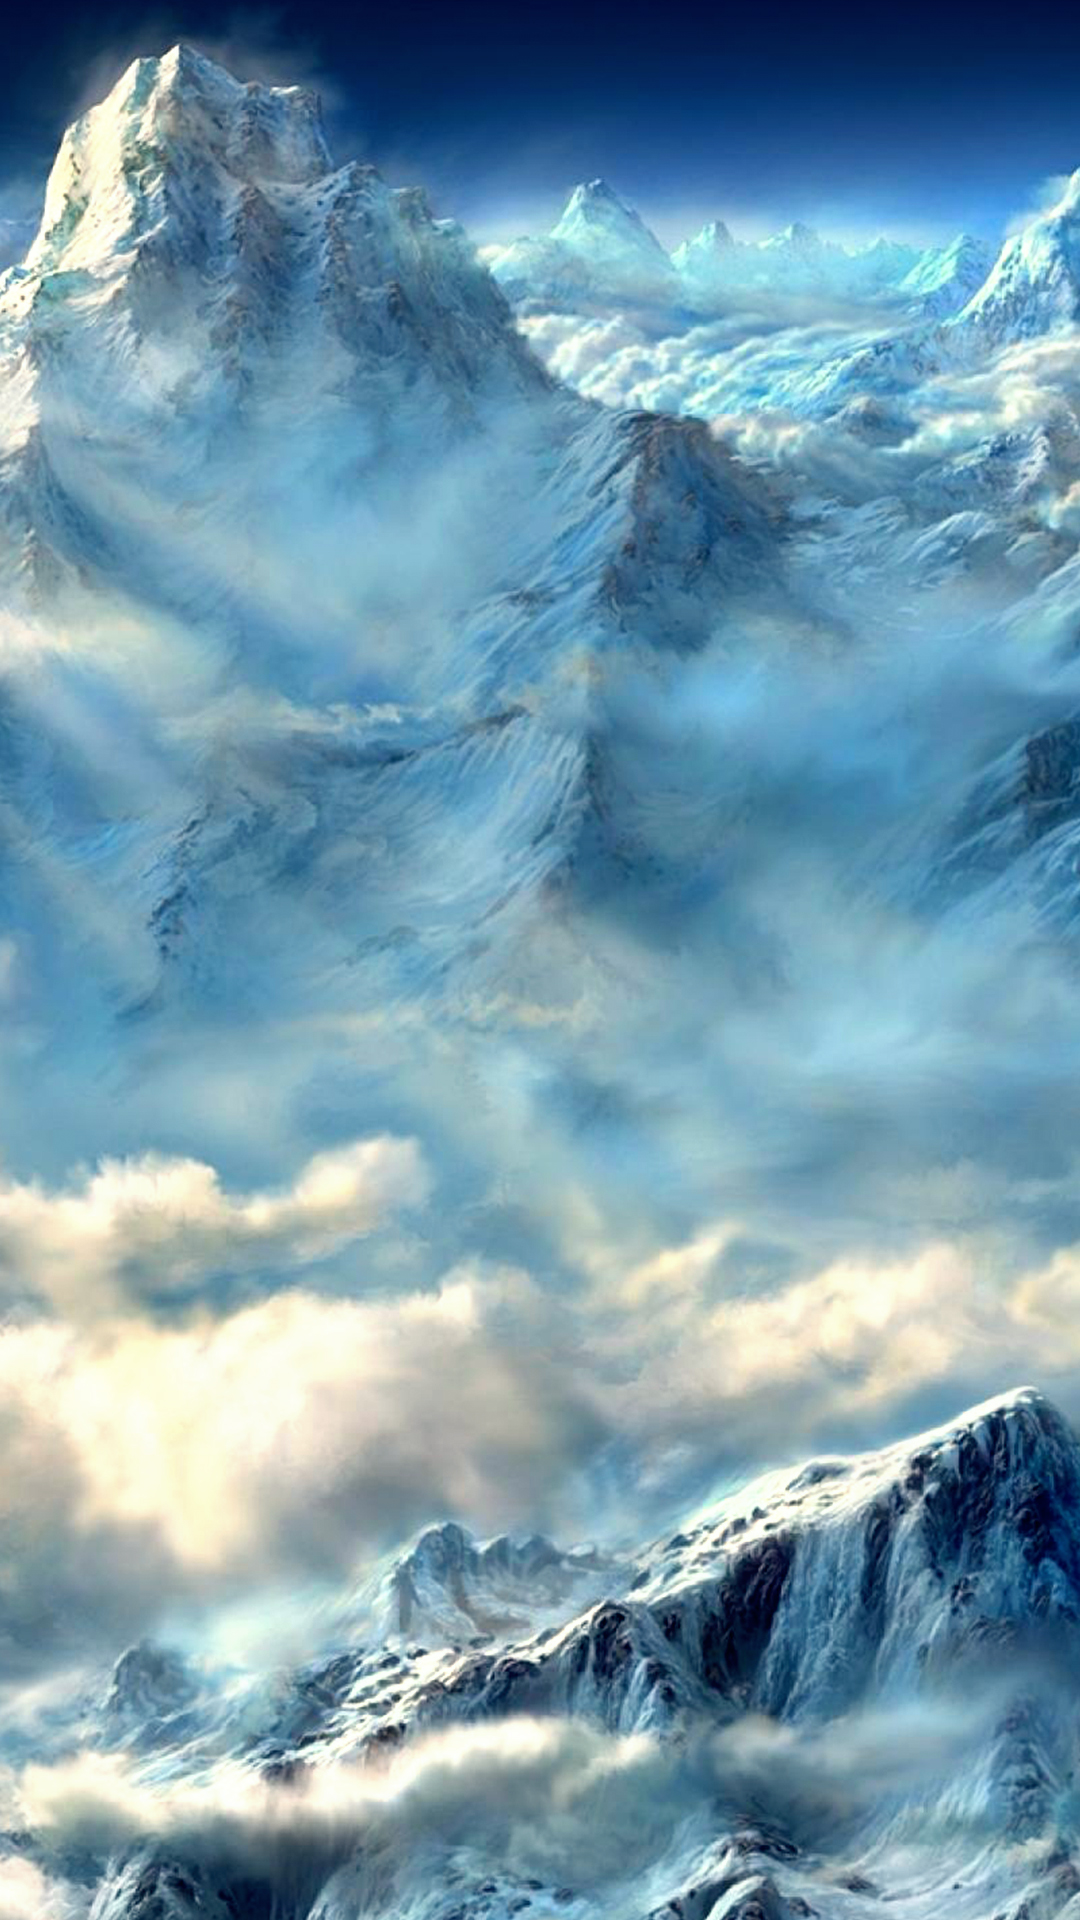 Free hd vertical limit phone wallpaper1126 download vertical limit phone wallpaper voltagebd Gallery